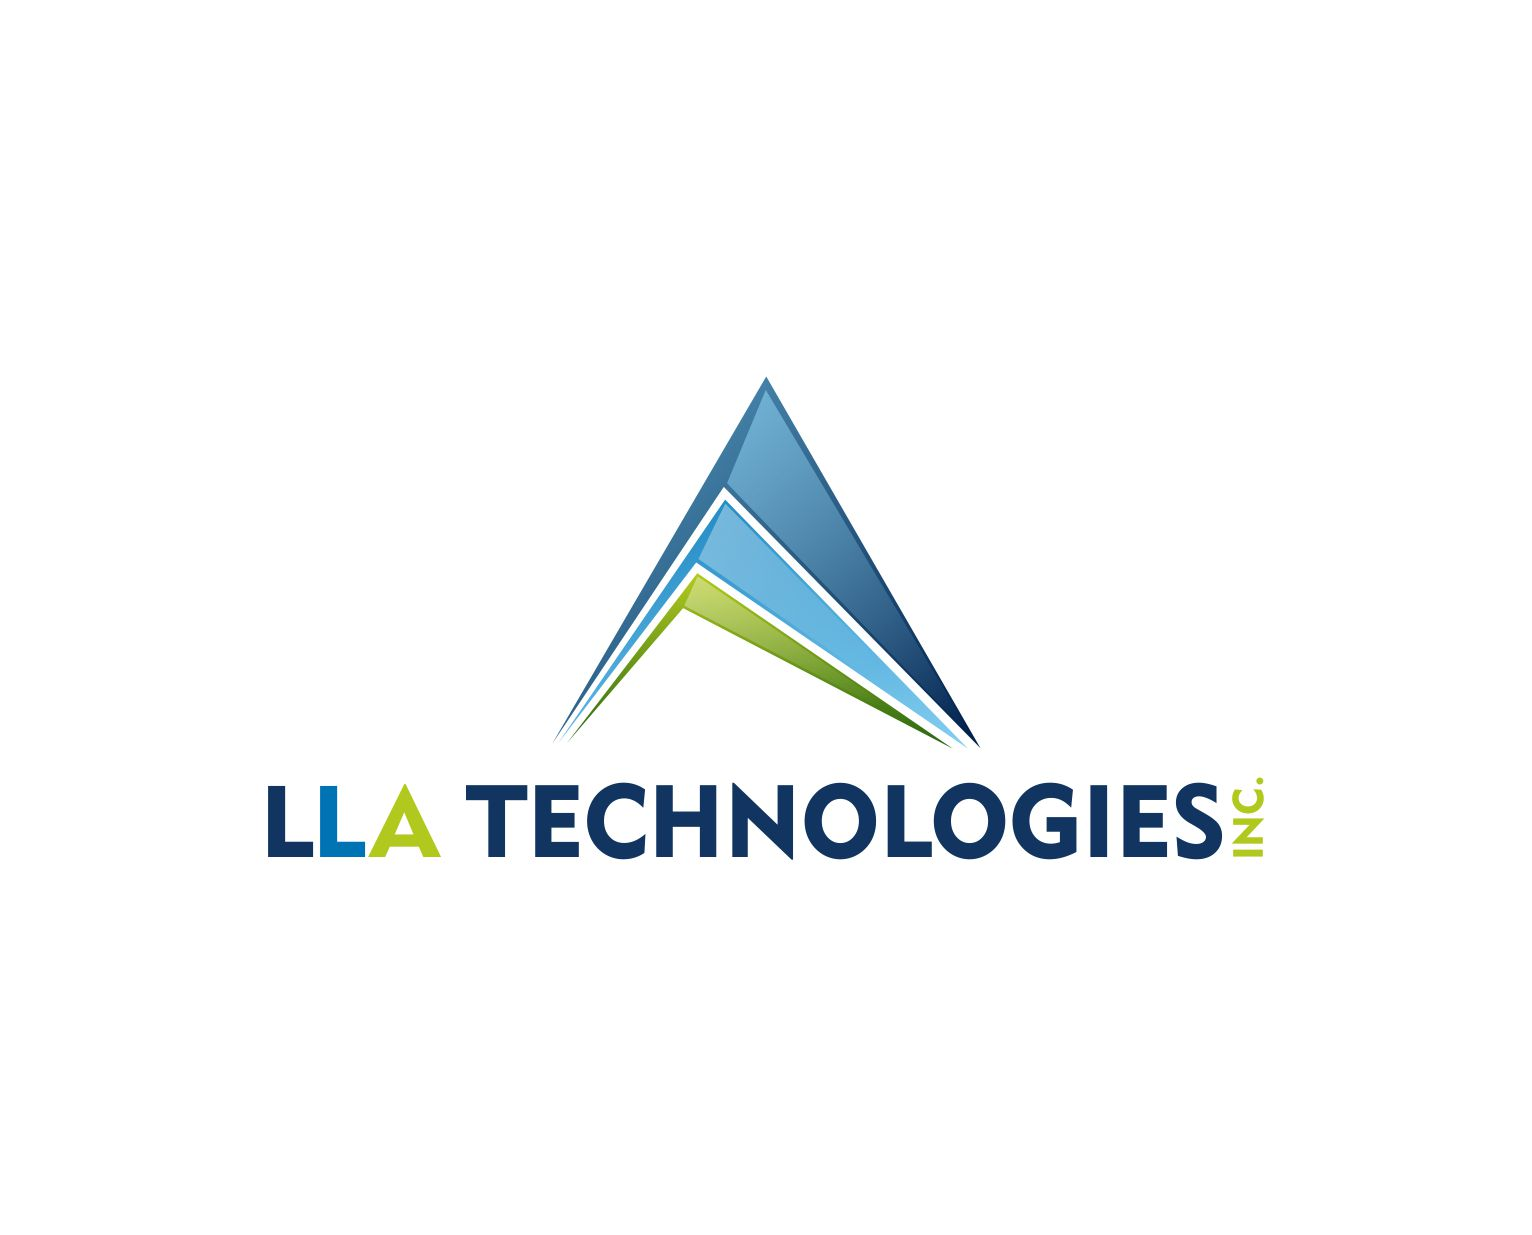 Logo Design by Muhammad Aslam - Entry No. 23 in the Logo Design Contest Inspiring Logo Design for LLA Technologies Inc..